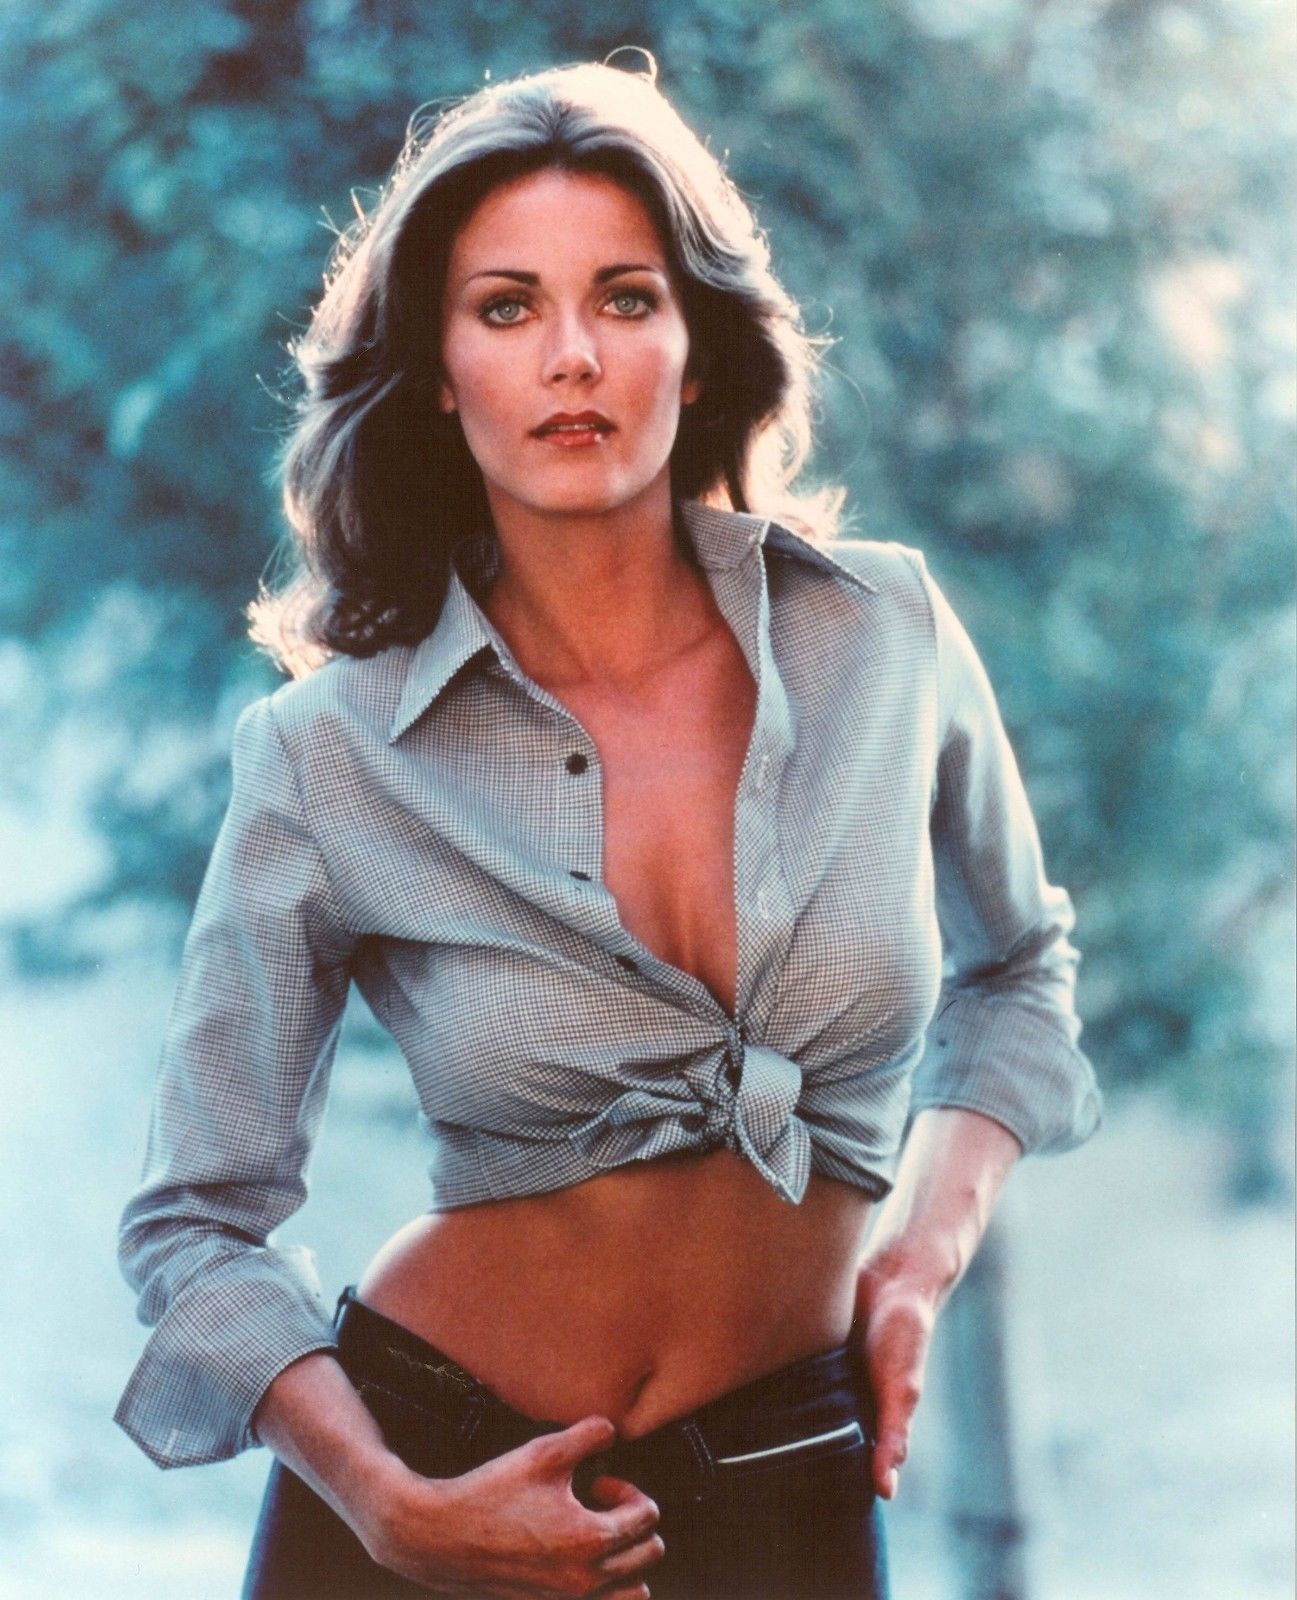 Primary image for Lynda Carter Poster 24 X 36 inch | ready to ship